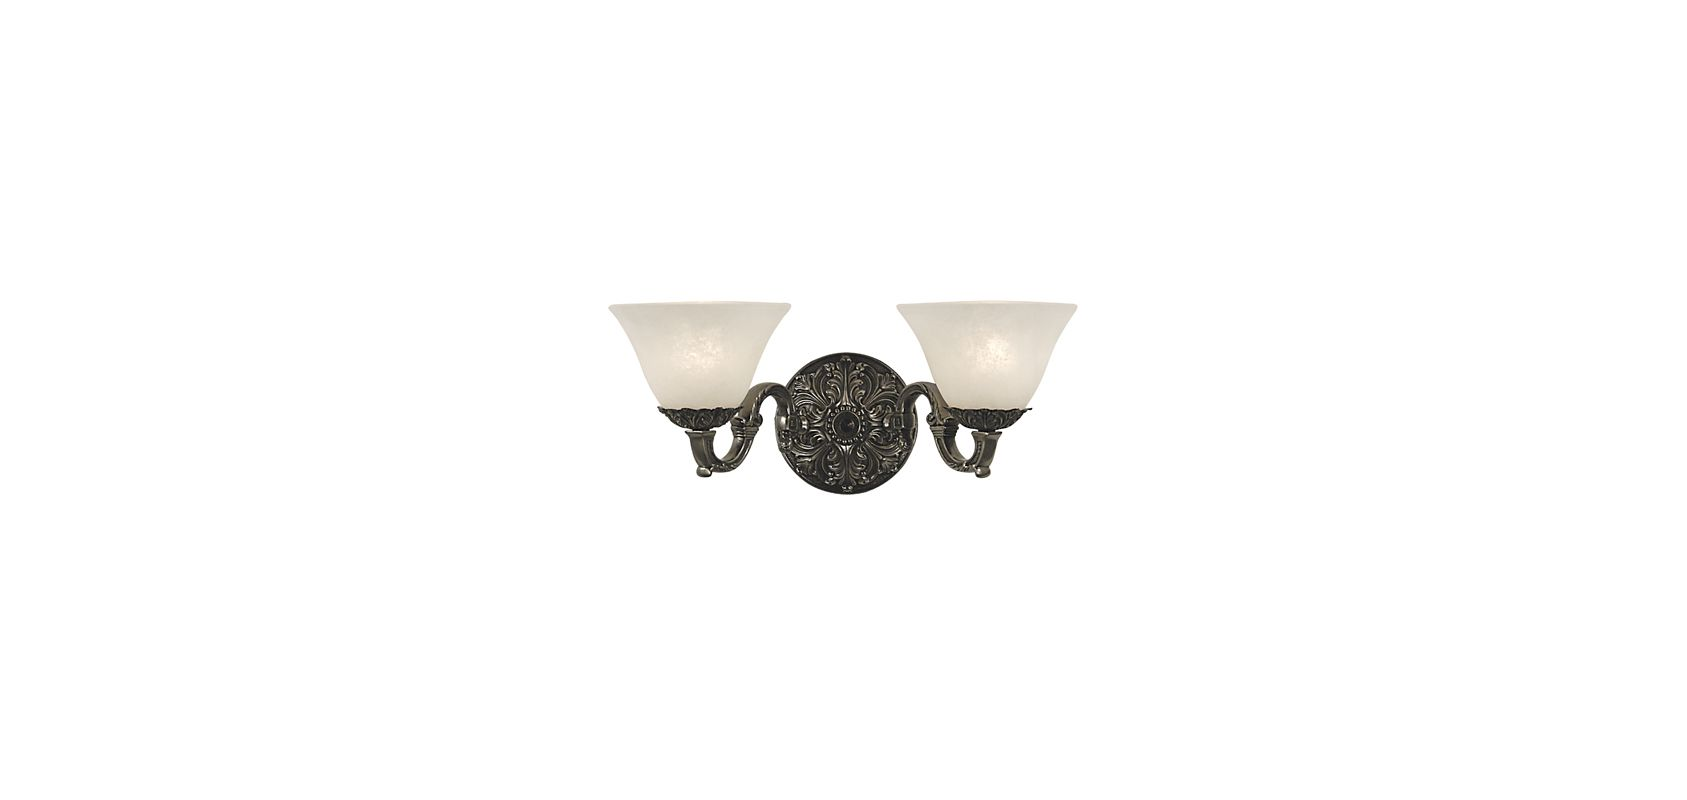 Framburg FR 7882 Up Lighting Wall Sconce from the Napoleonic